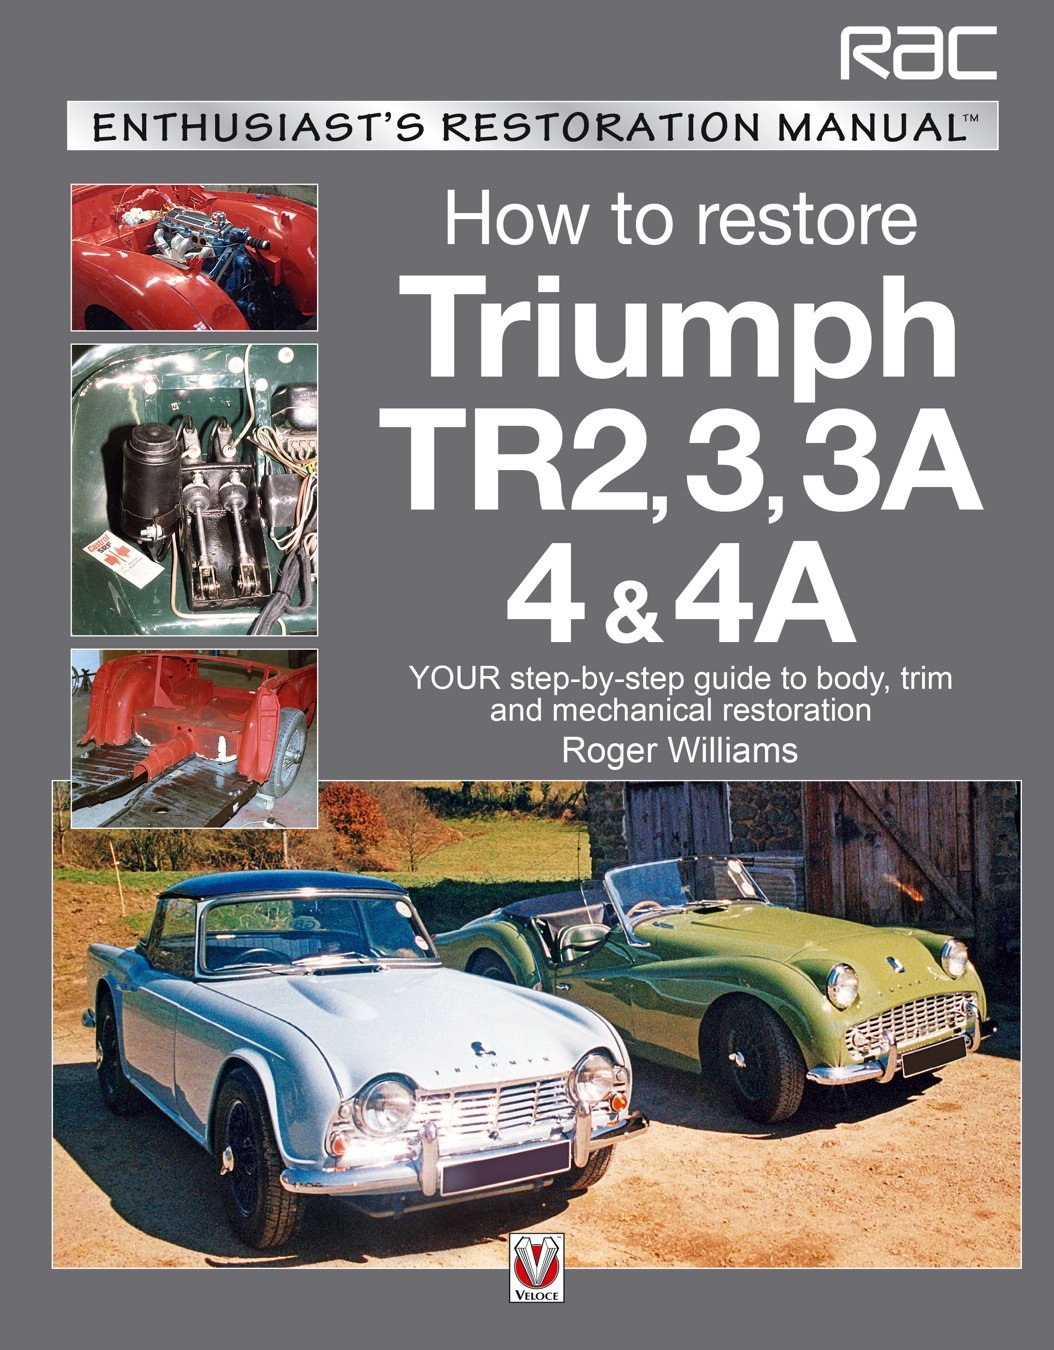 Read Online How to Restore Triumph TR2, 3, 3A, 4 & 4A: Your step-by-step guide to body, trim and mechanical restoration (Enthusiast's Restoration Manual) PDF